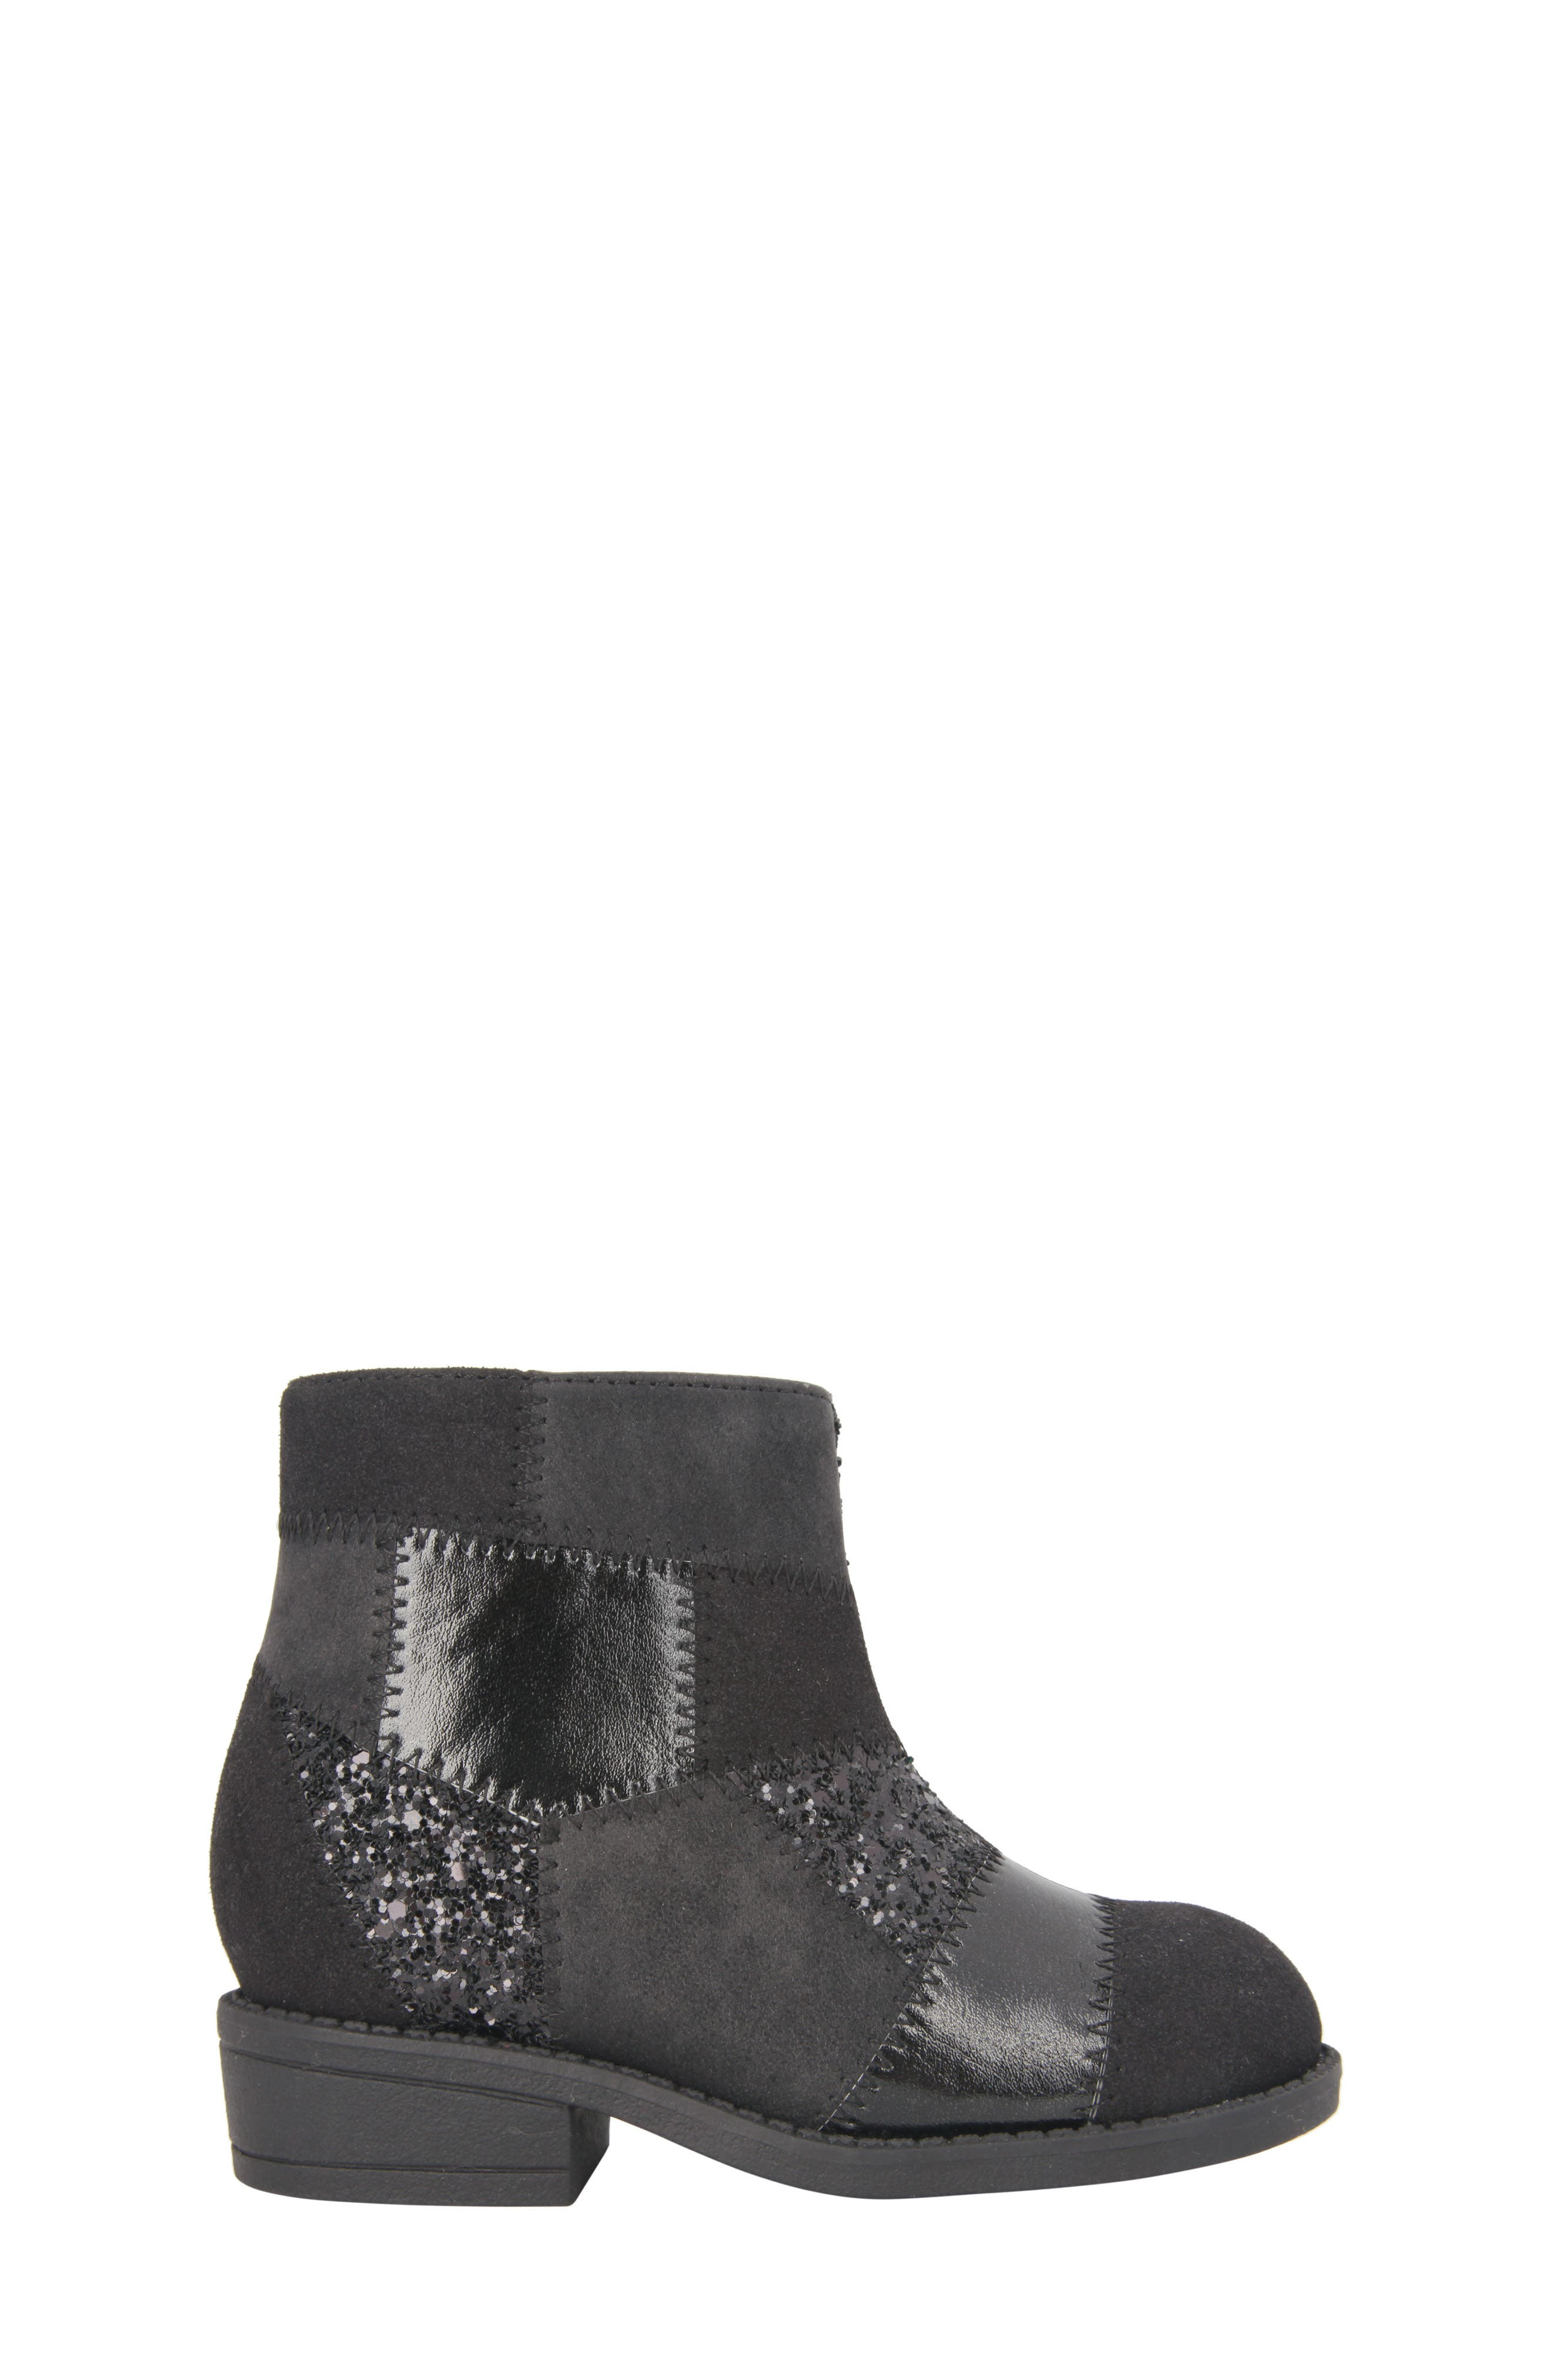 Ines Glittery Patchwork Bootie,                             Alternate thumbnail 3, color,                             Black Metallic/ Black Glitter